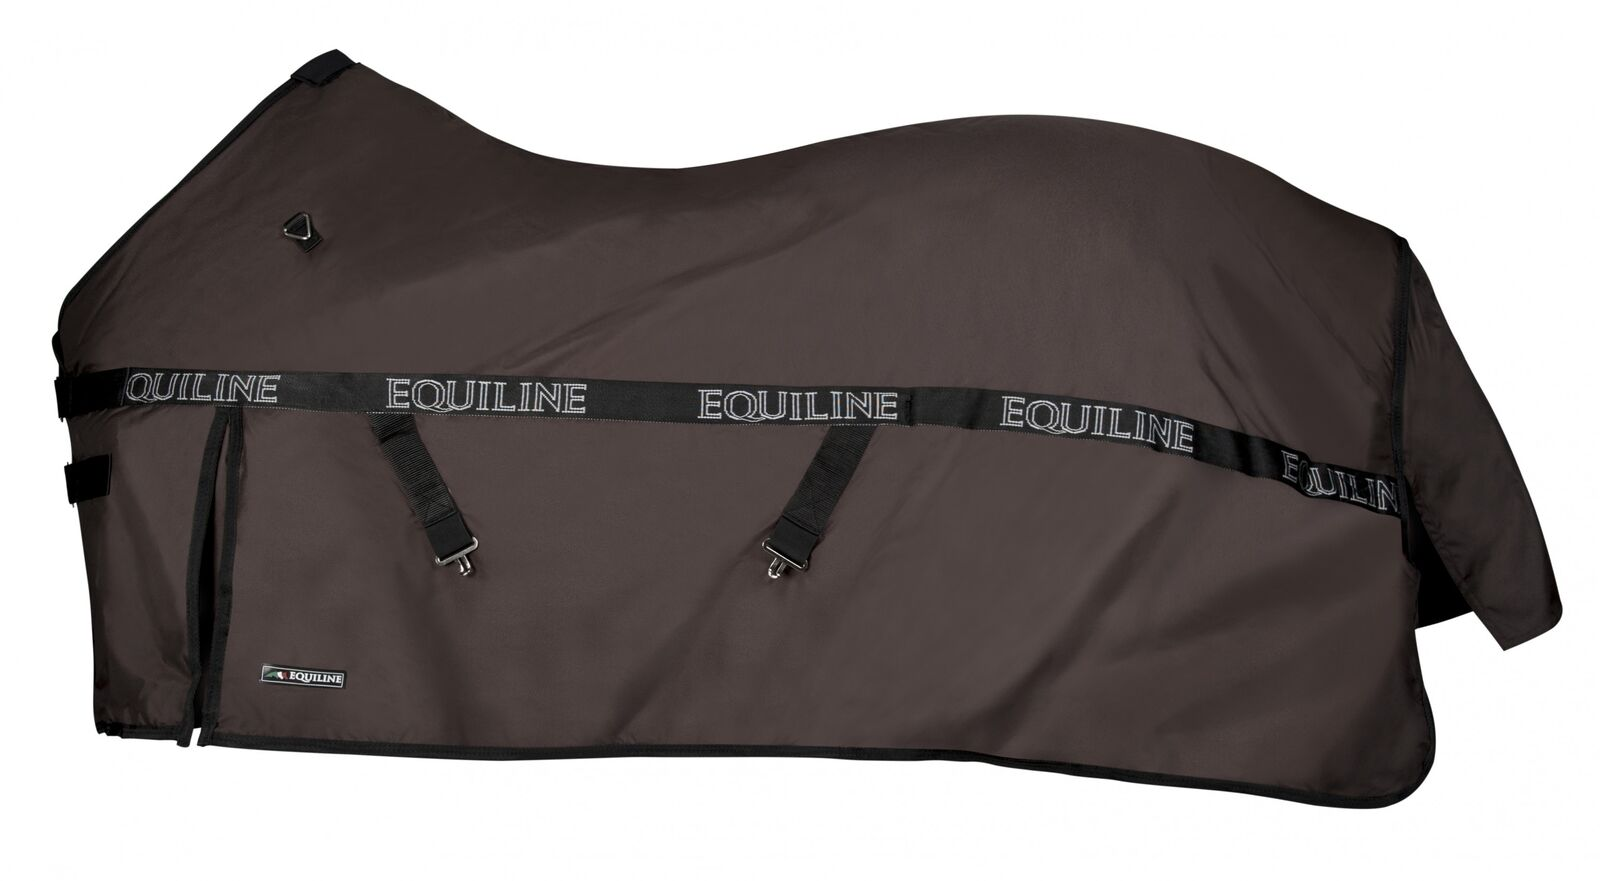 Equiline Paddockdecke Clint 200 marrón Willow couverdeure surfaix tail